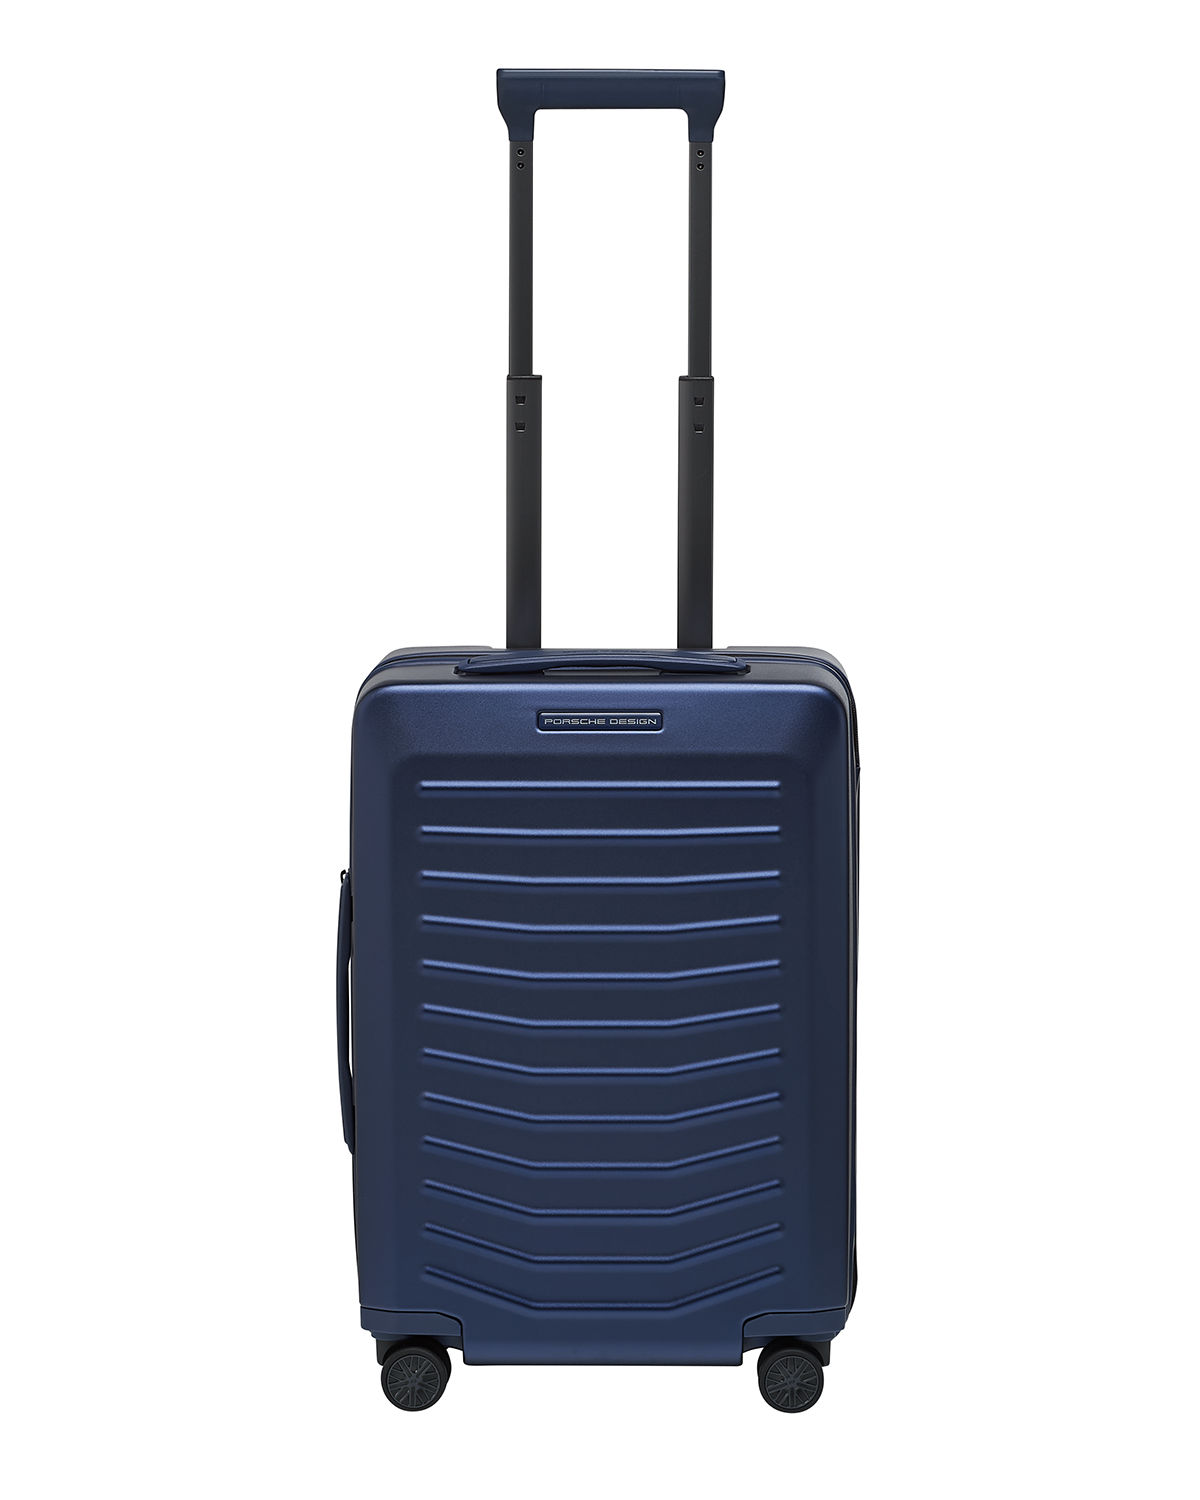 """Porsche Design ROADSTER 21"""" CARRY-ON SPINNER LUGGAGE"""